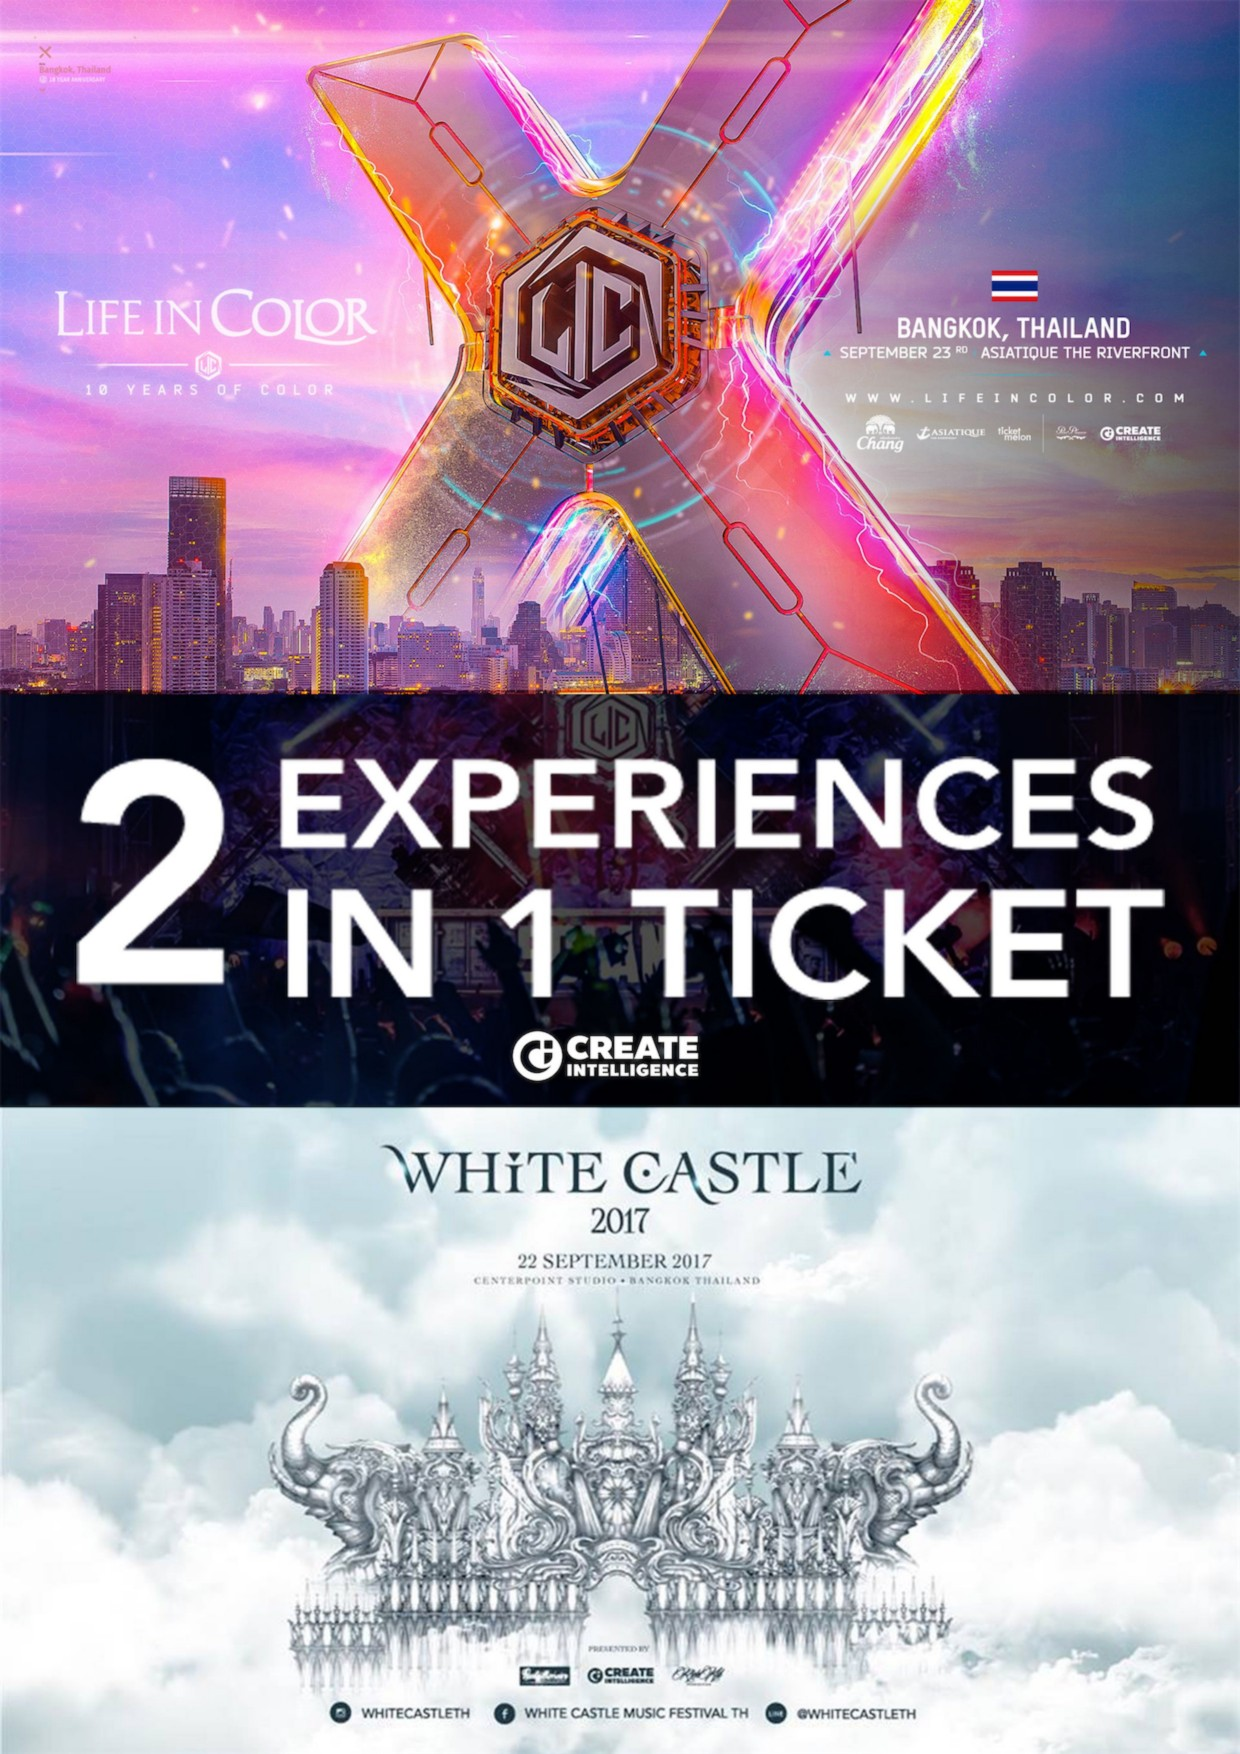 2 EXPERIENCES IN 1 TICKET